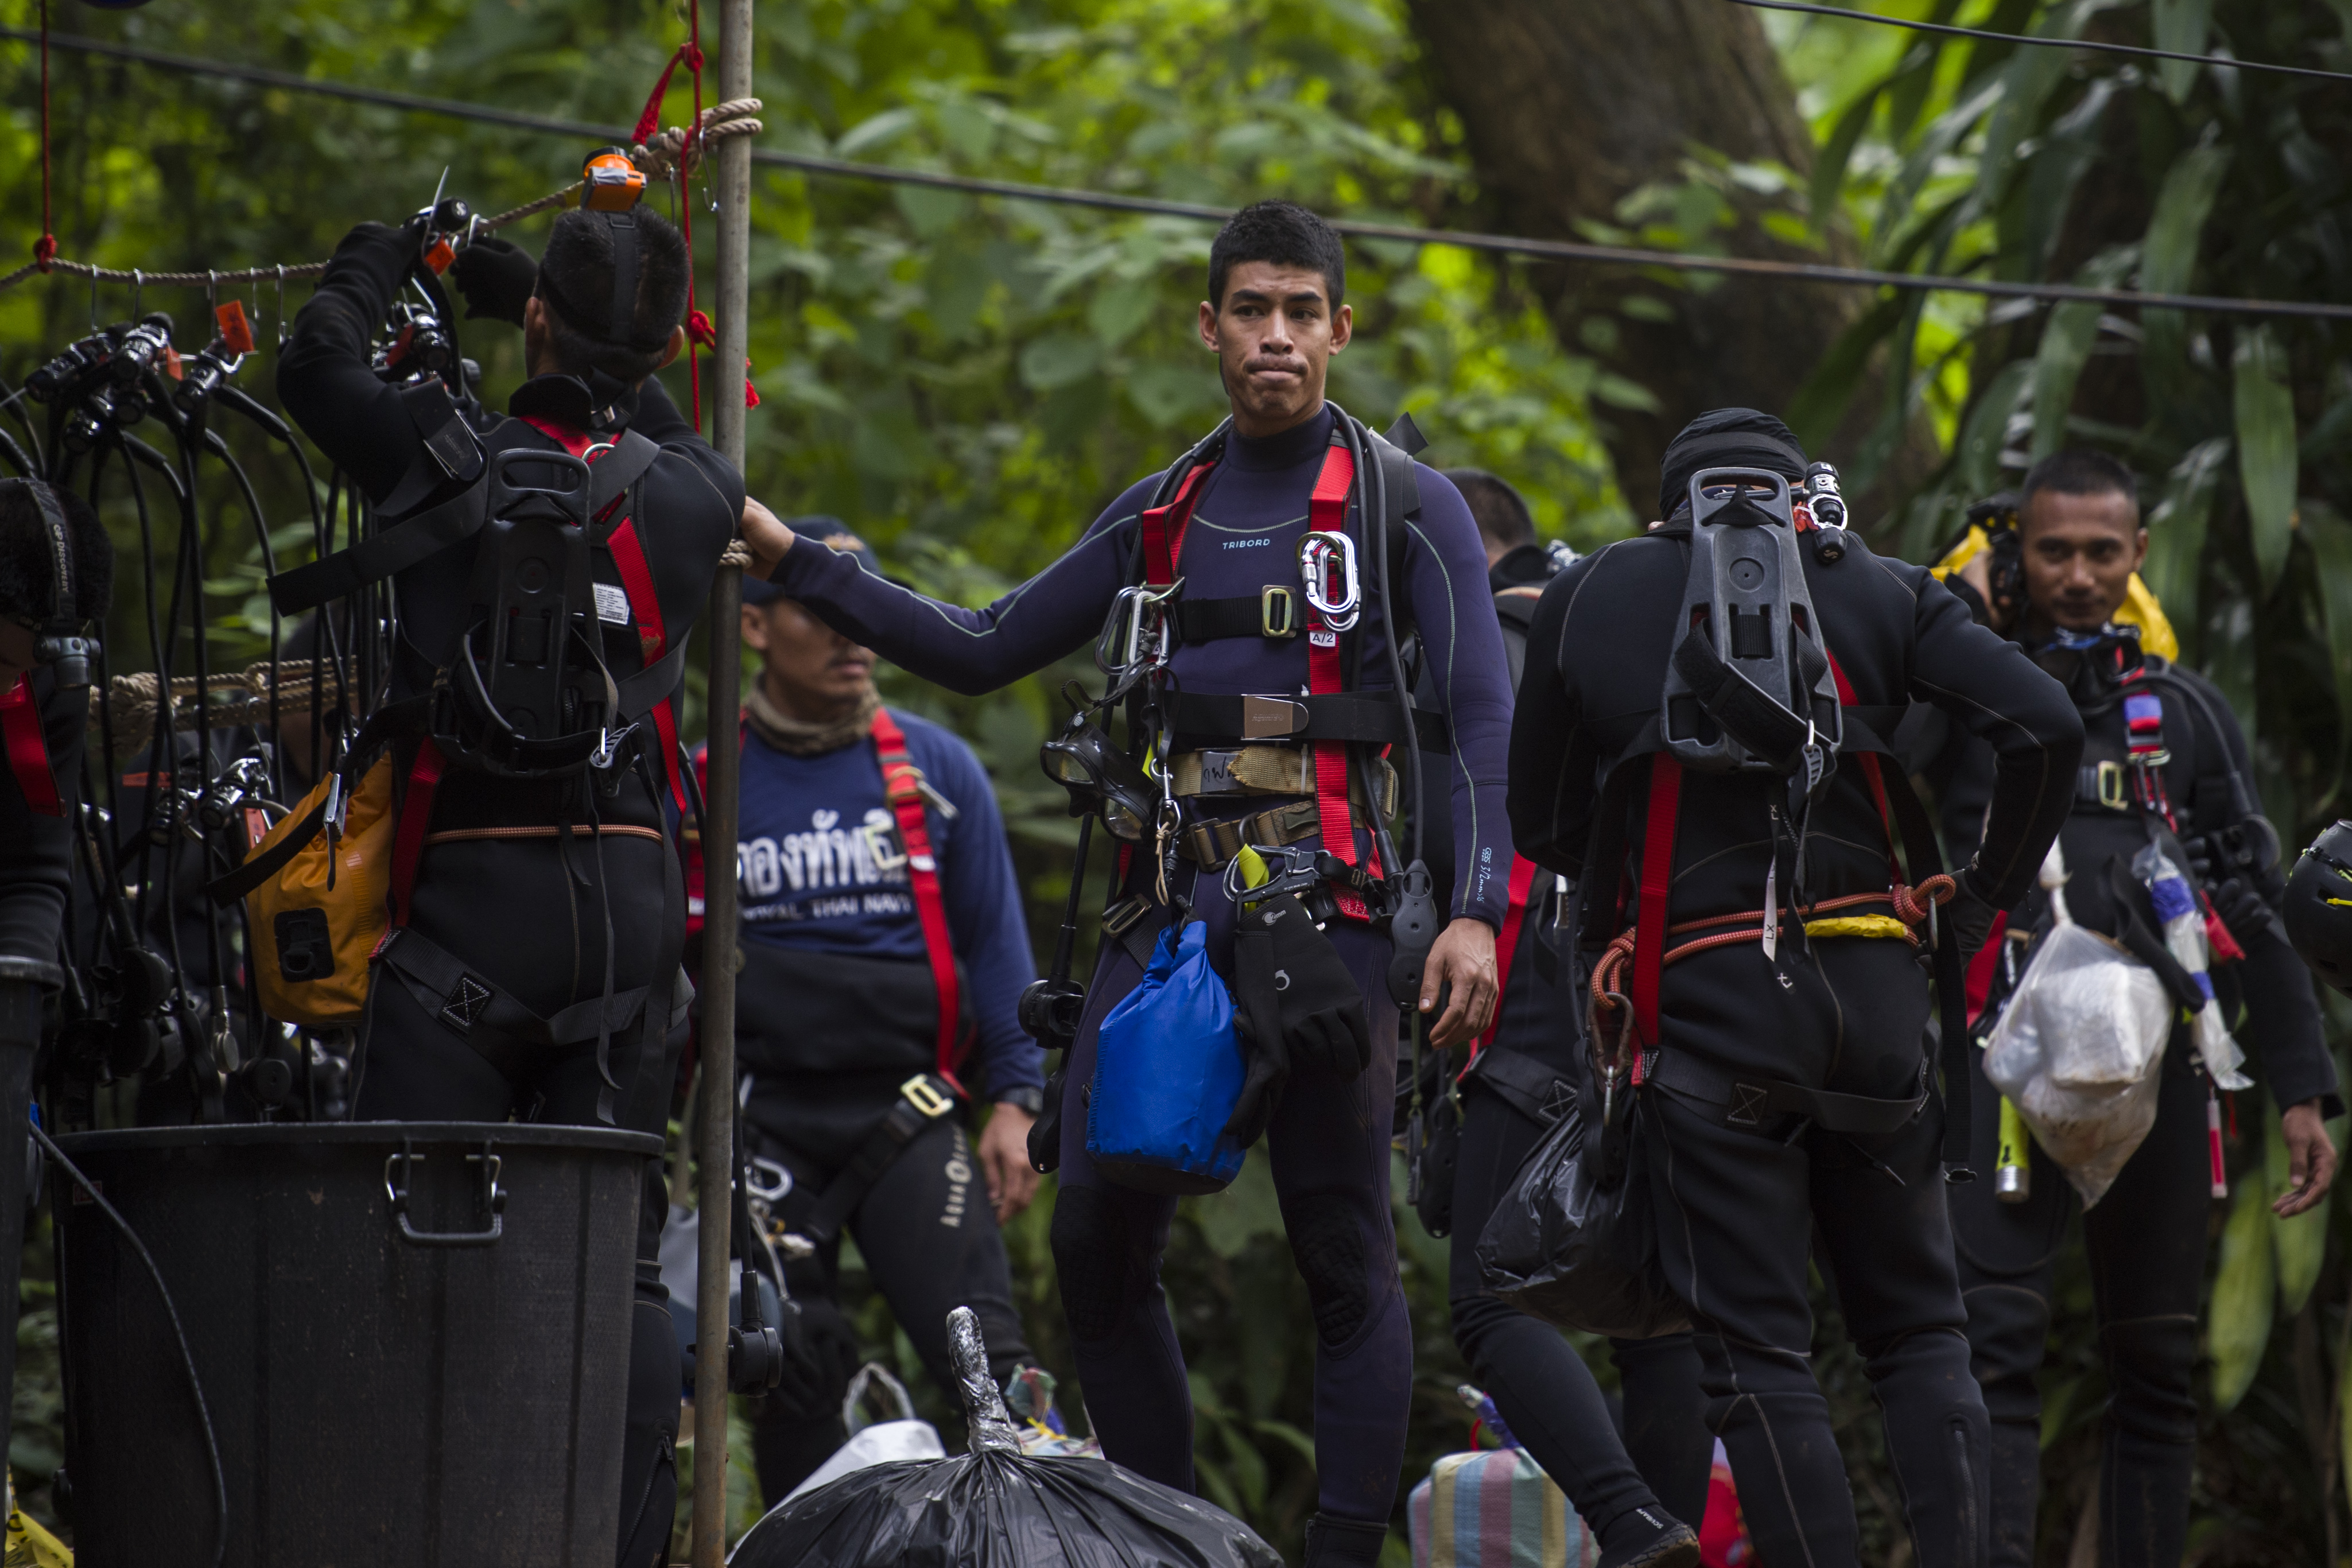 Thai divers carry supplies as rescue operations continued for 12 boys and their coach trapped at Tham Luang cave at in the Mae Sai district of Chiang Rai province on July 5, 2018. The team has been successfully rescued.